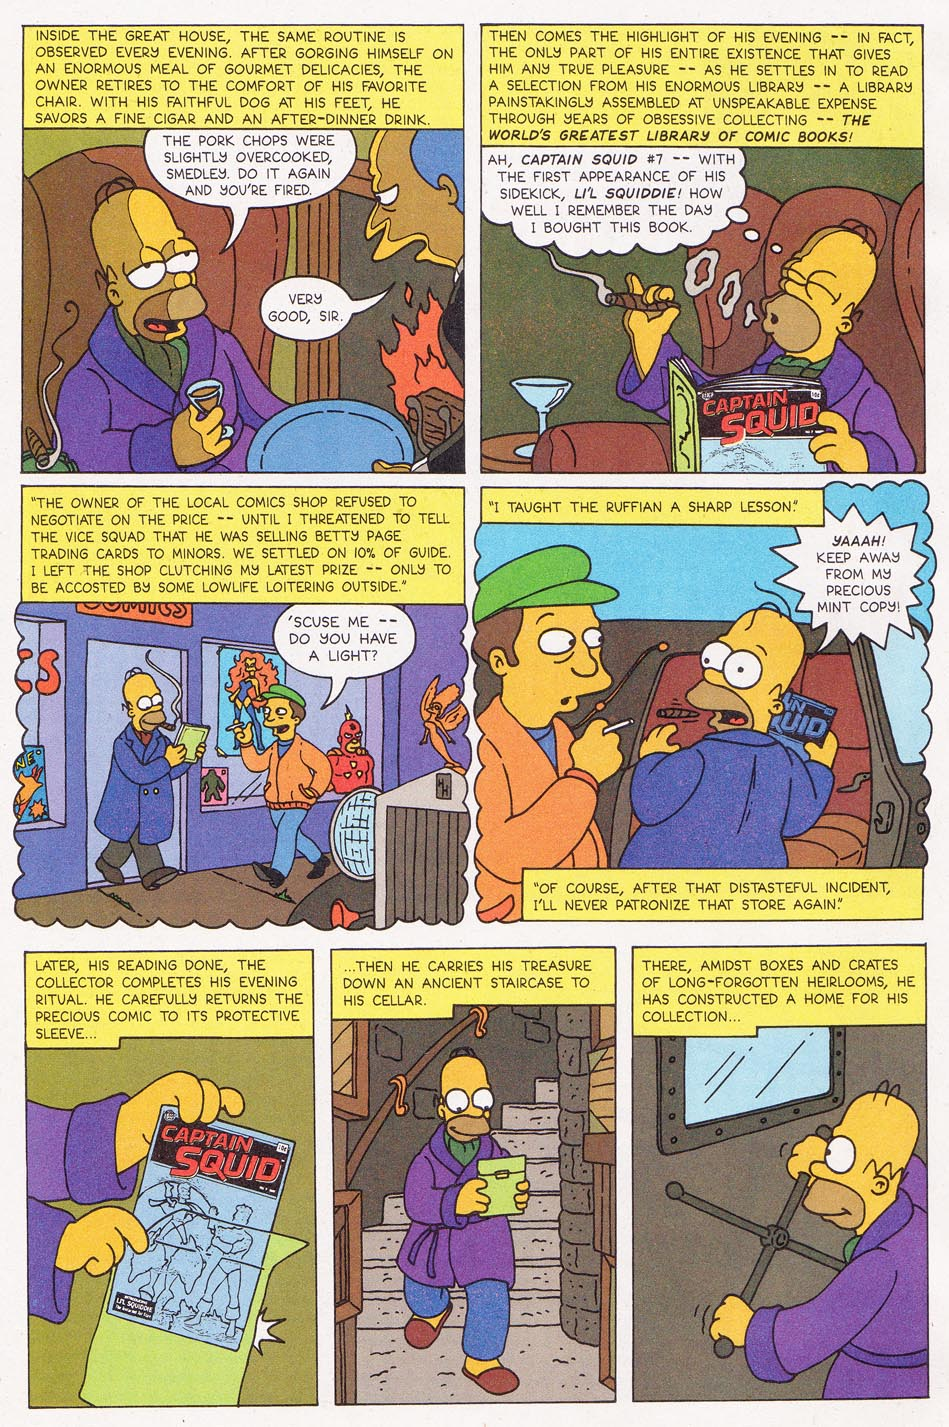 Read online Simpsons Comics comic -  Issue #1 - 29